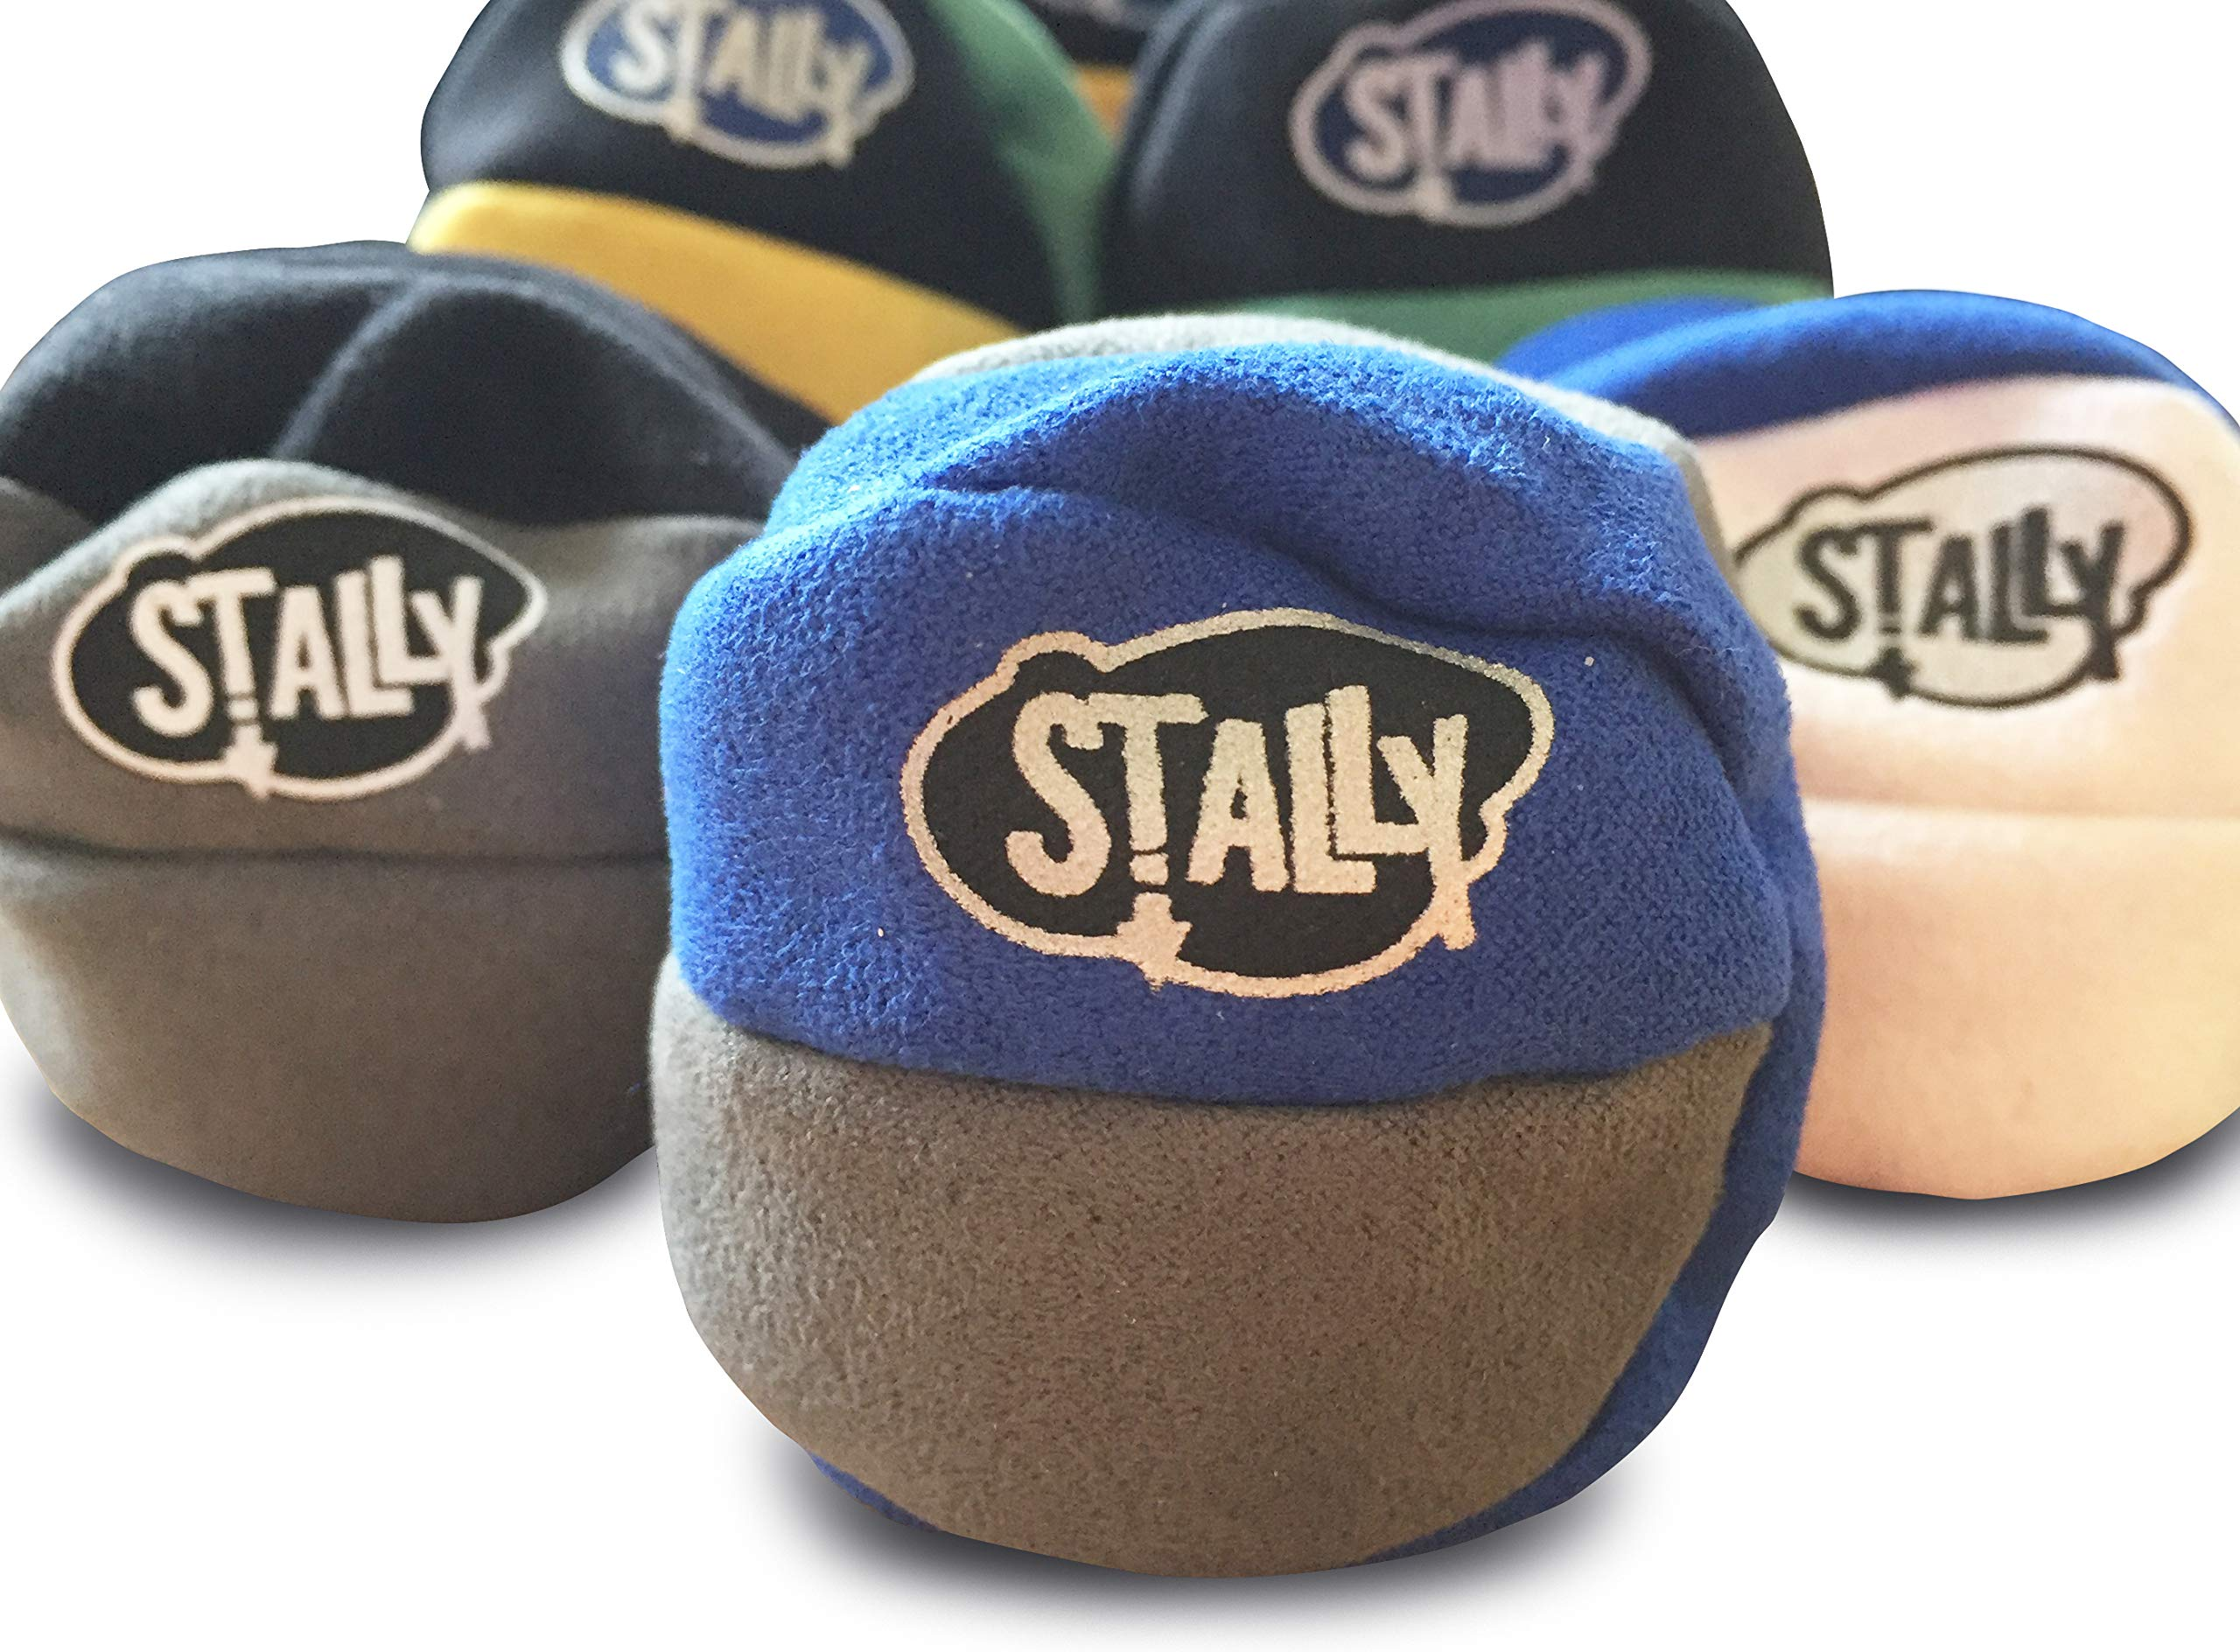 Stally Hacky Sack Footbag 6-Pack, Assorted Colors